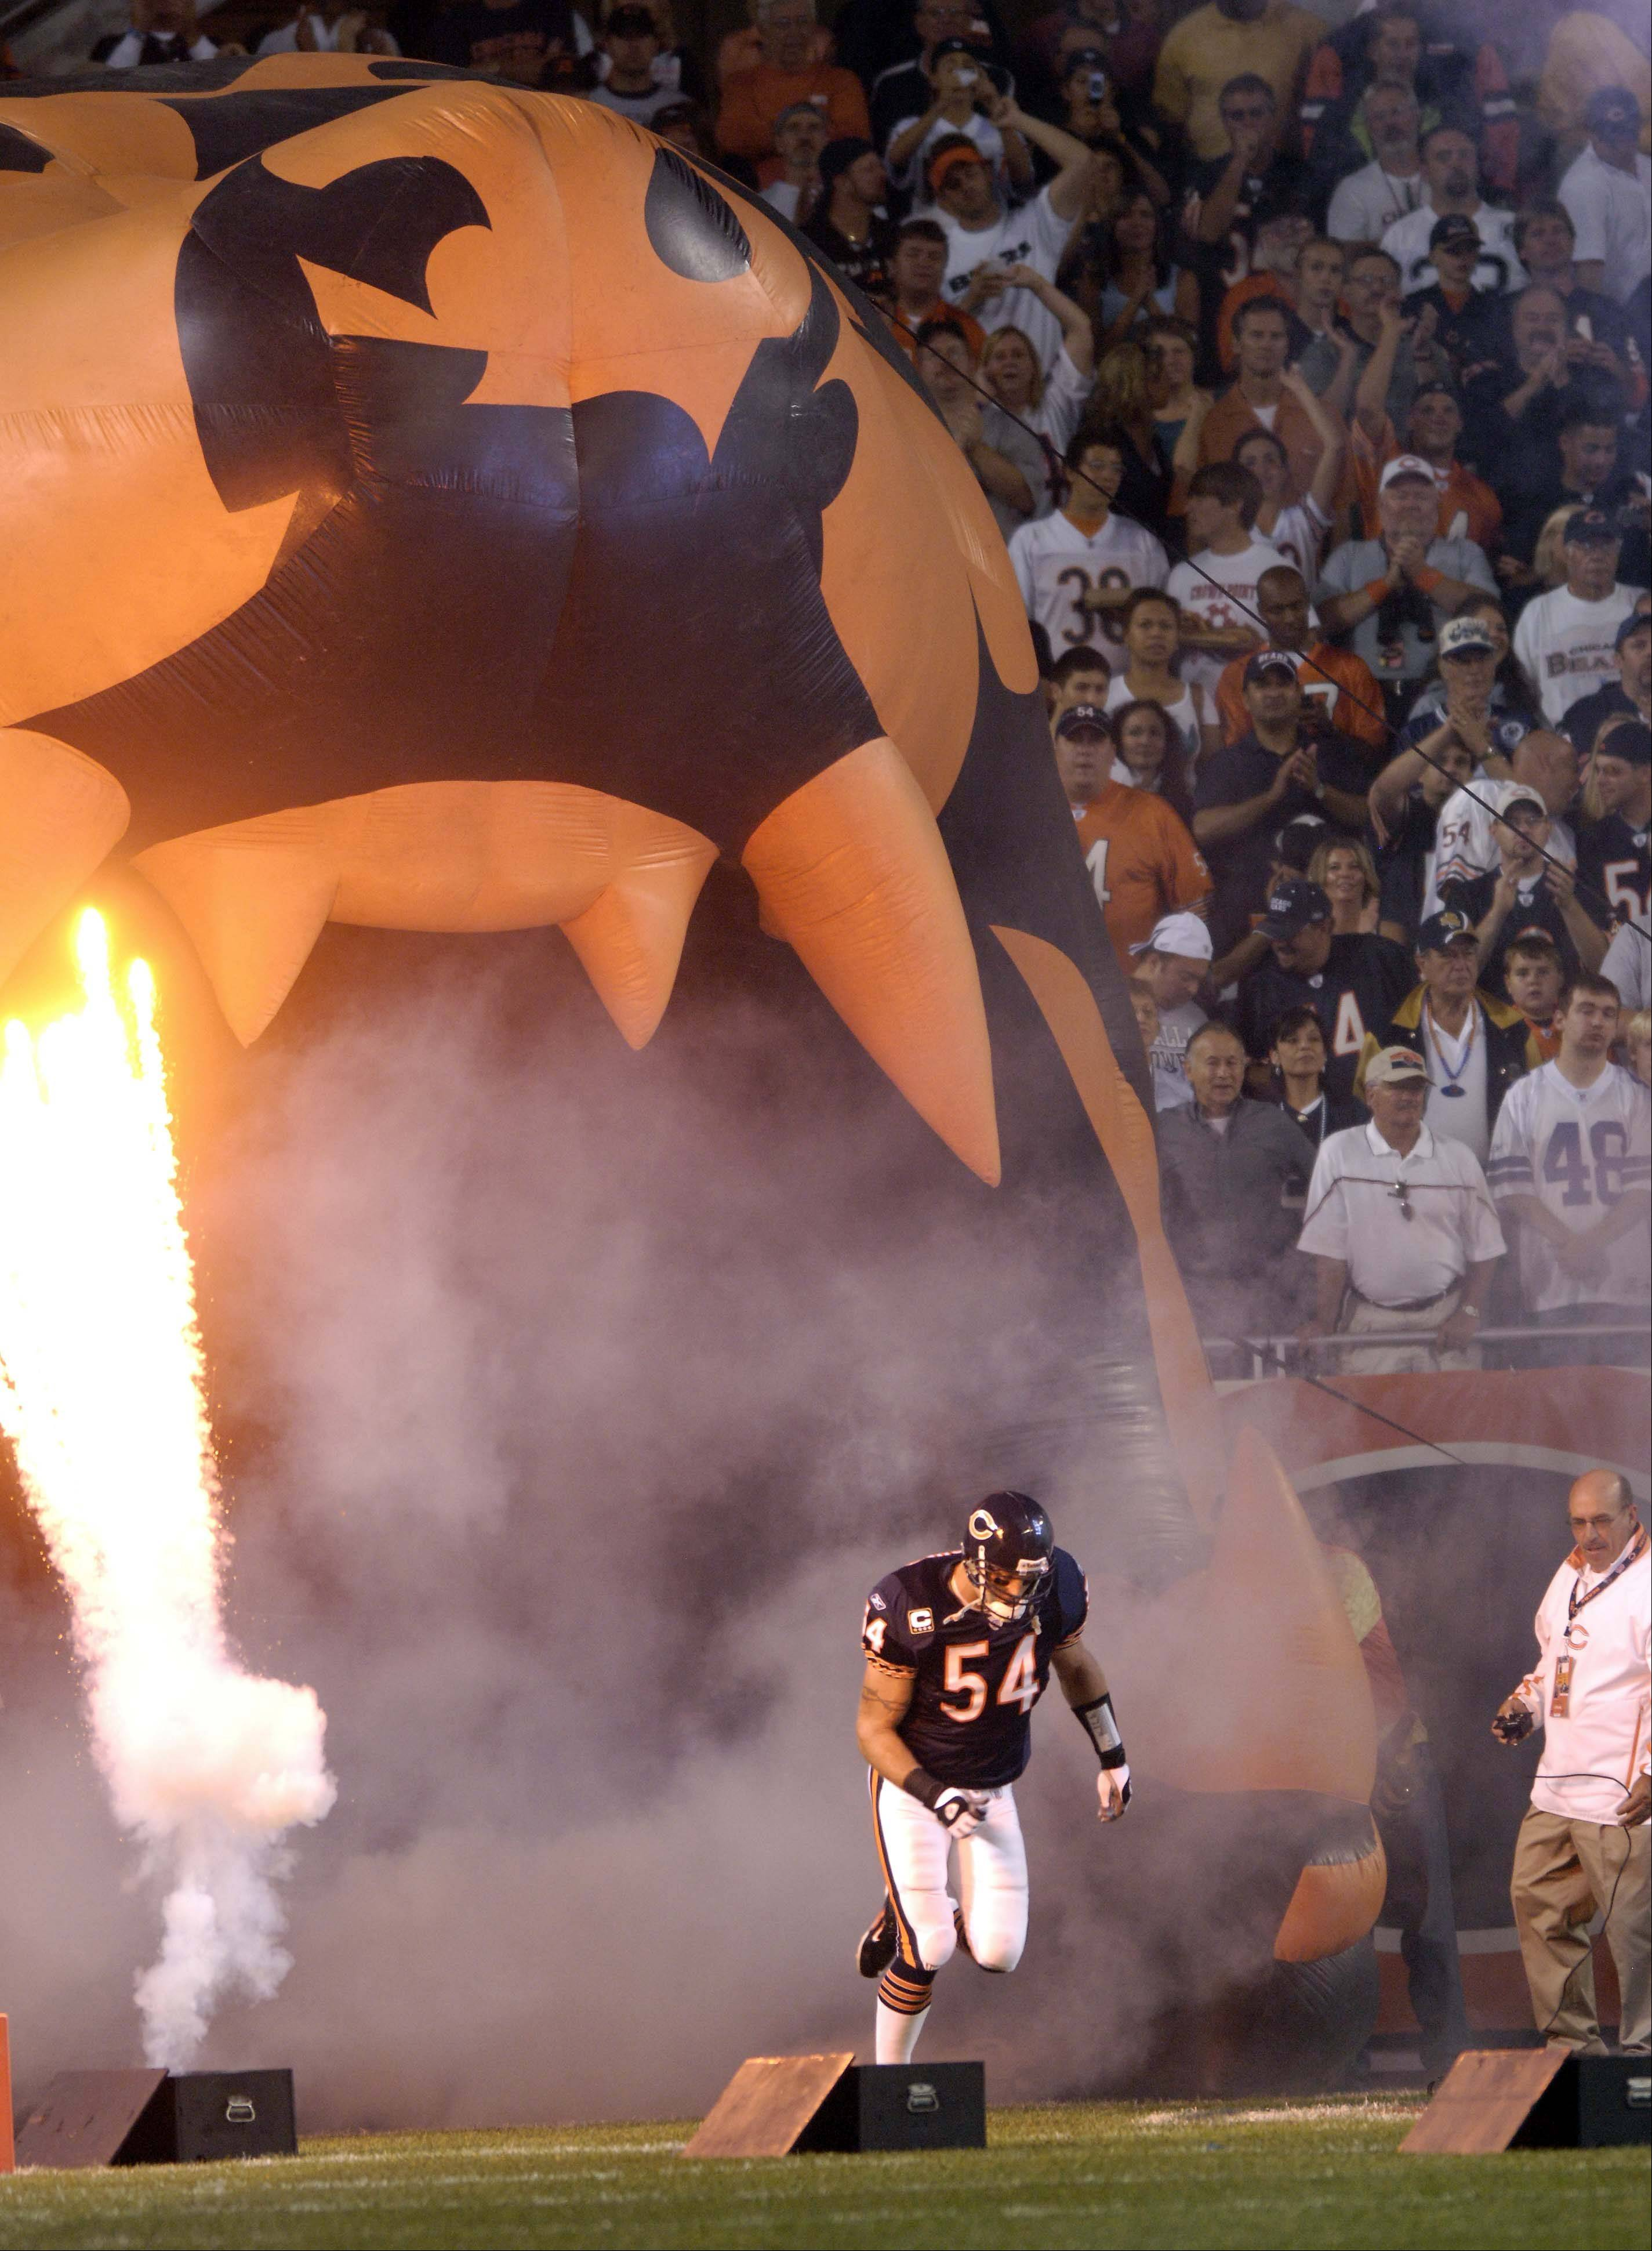 Brian Urlacher enters the field to play the Cowboys at Soldier field in Chicago.